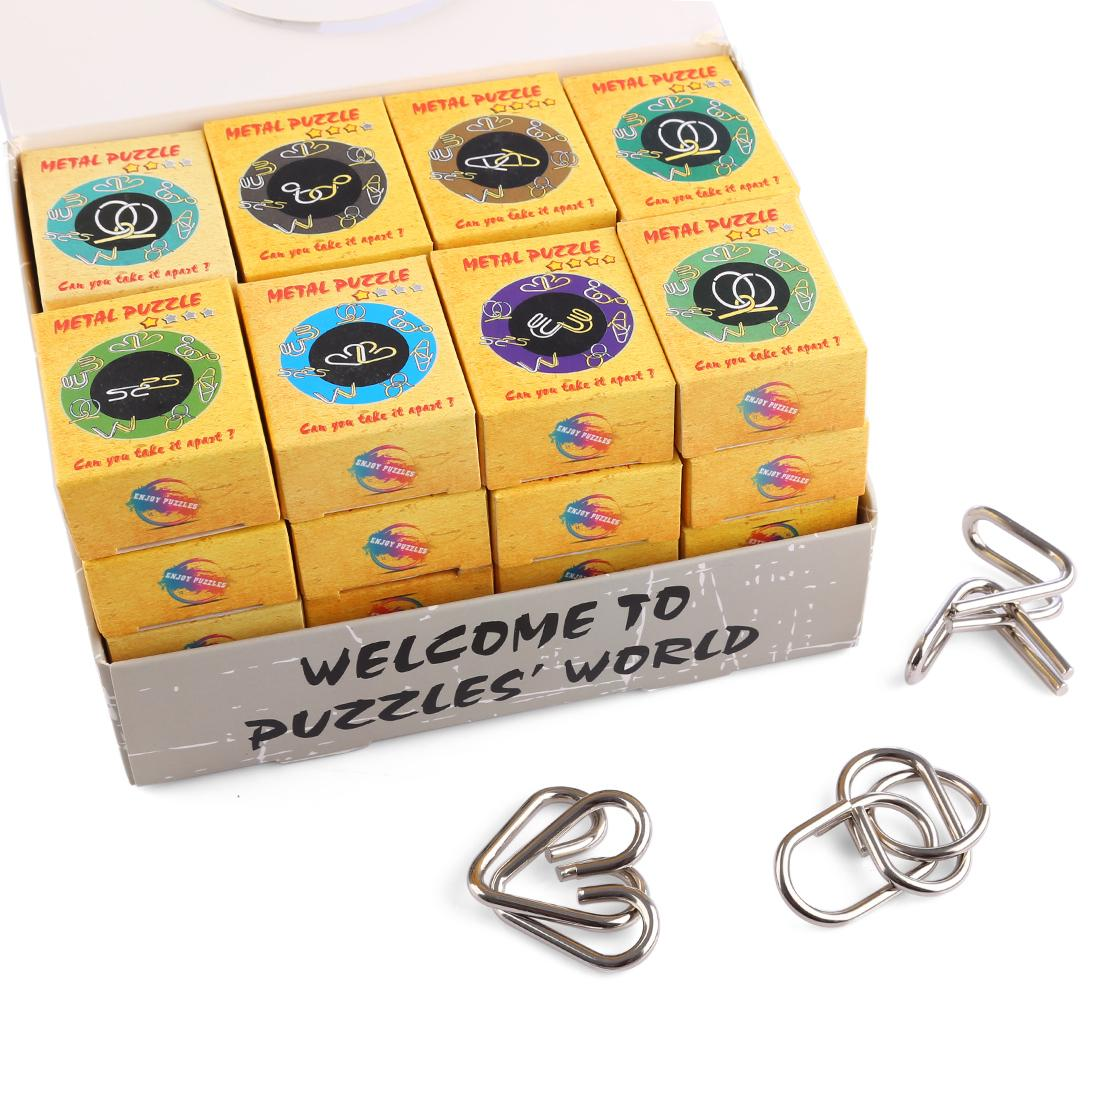 32pcs Classic Iq Montessori Metal Wire Puzzle Baffling Brain Teaser Magic Rings Puzzles Game Toys For Adults Children Kids Gifts